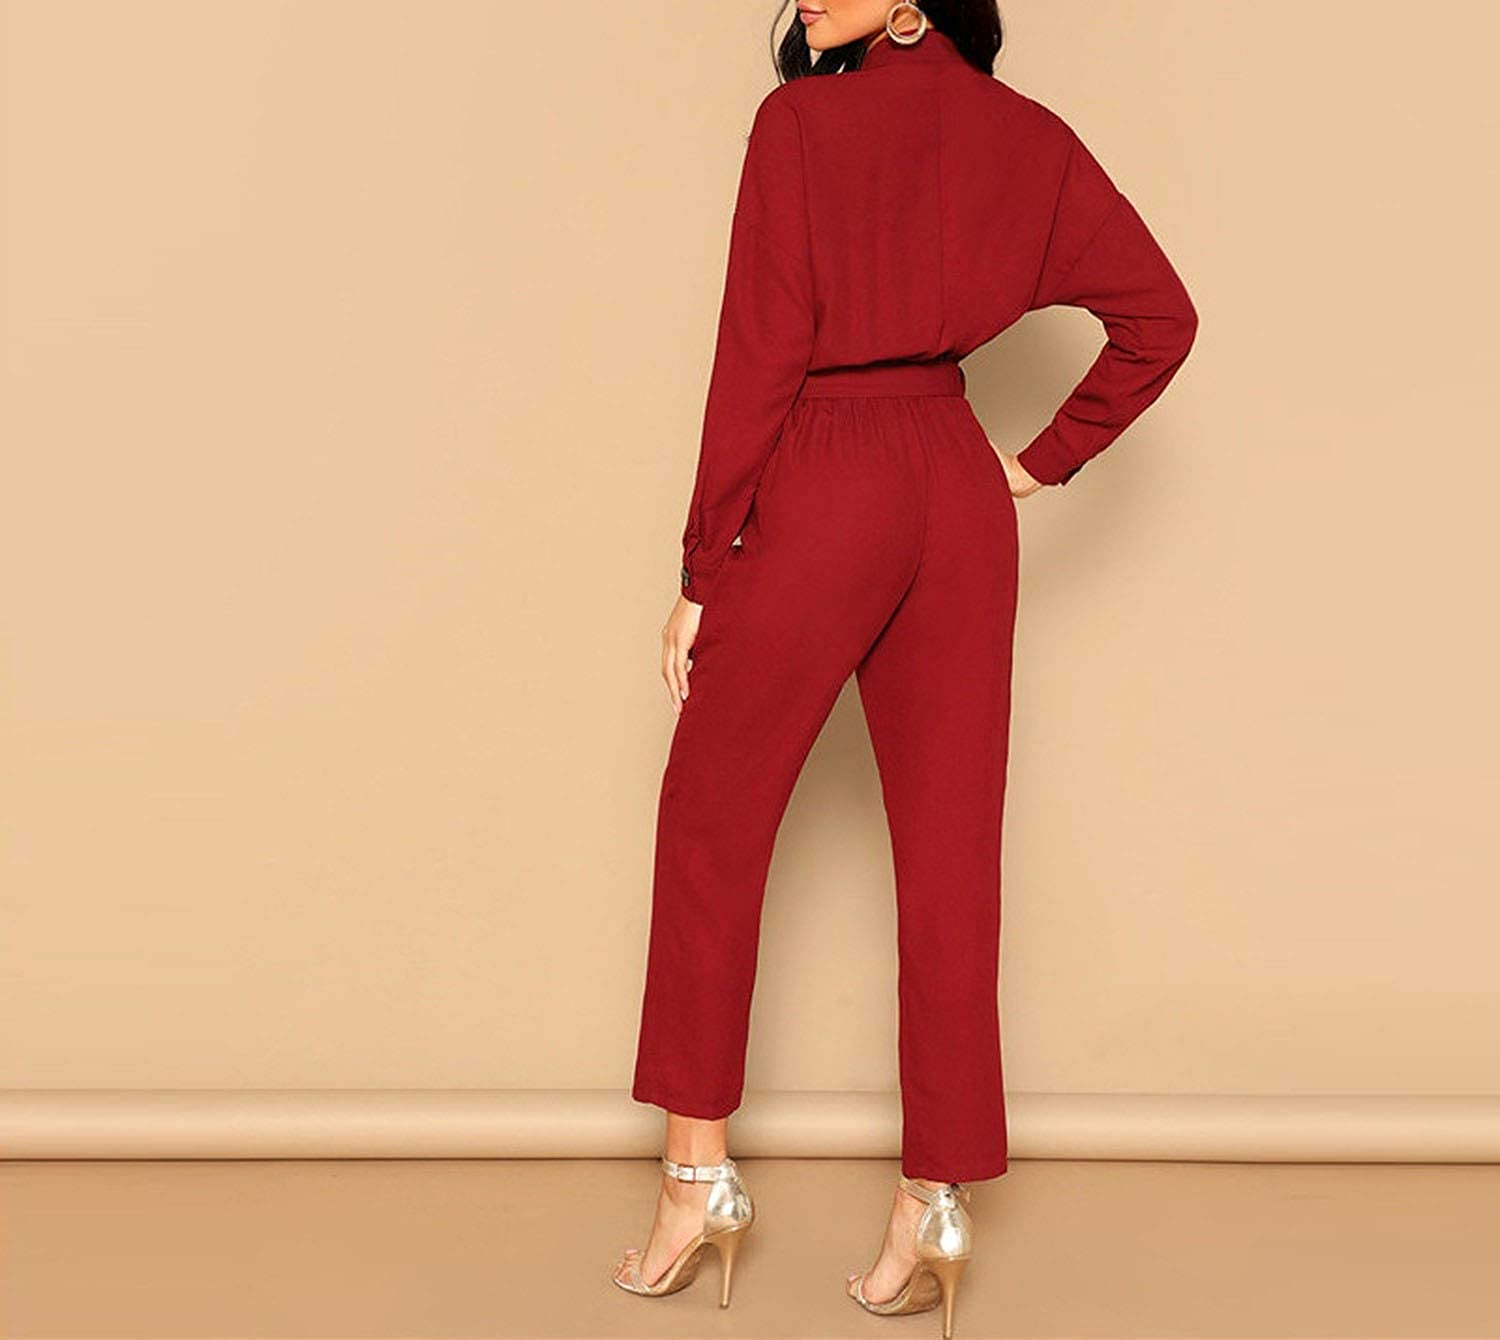 The small cat Elegant Long Sleeve Stand Collar Jumpsuits Women Autumn Highstreet Jumpsuit,Burgundy,XS